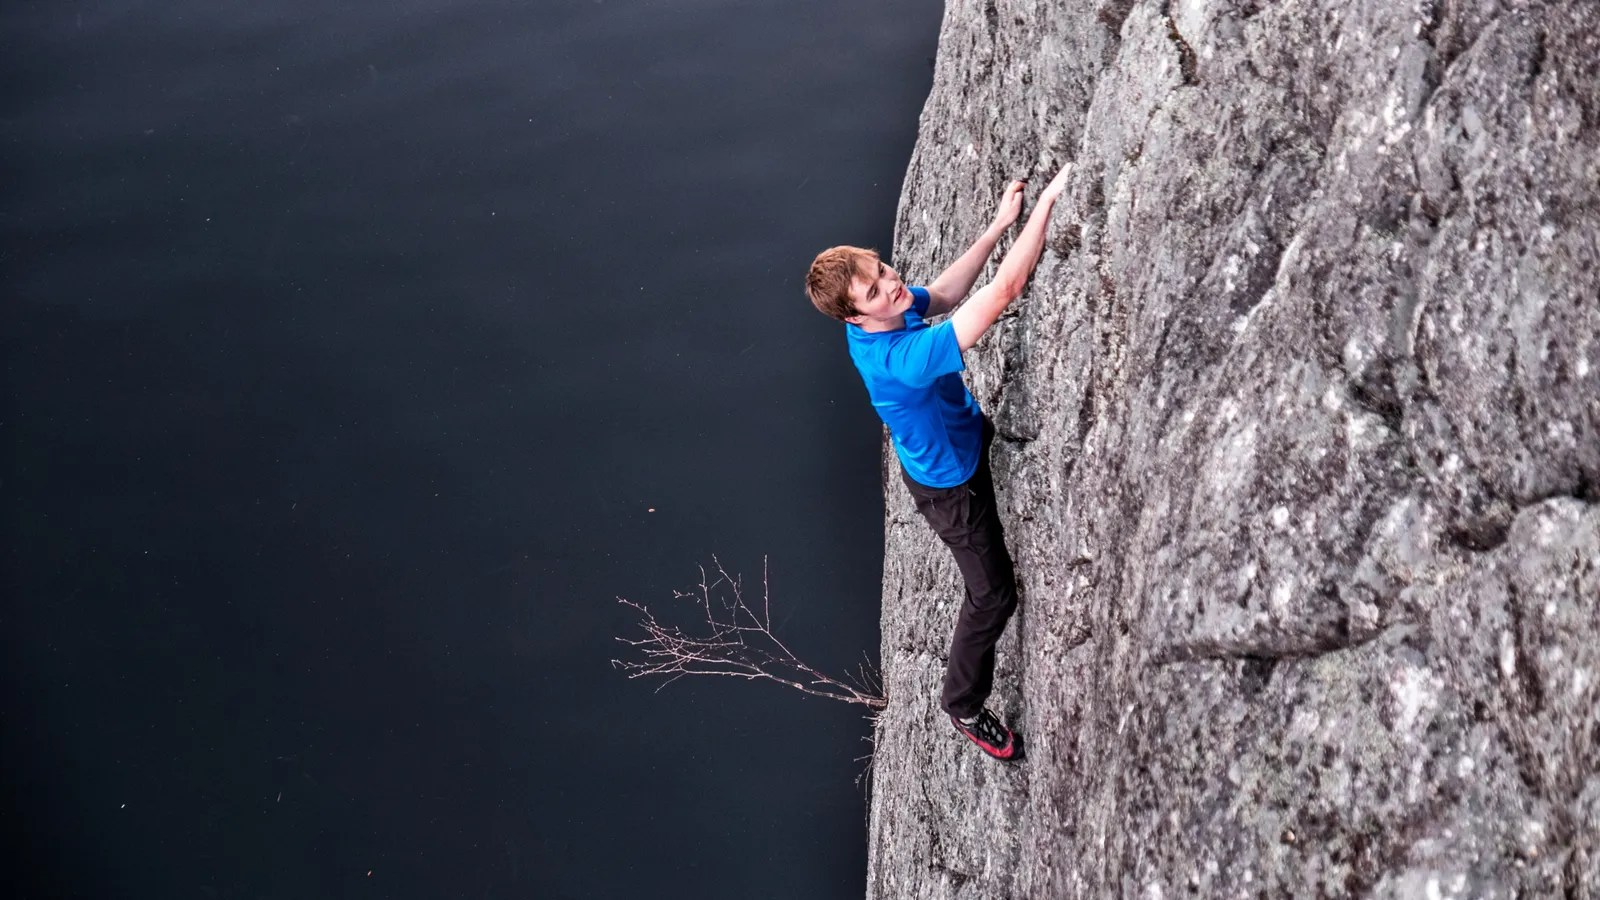 Adirondack Fall Wallpaper How To Climb Big Cliffs Without Ropes And Not Die